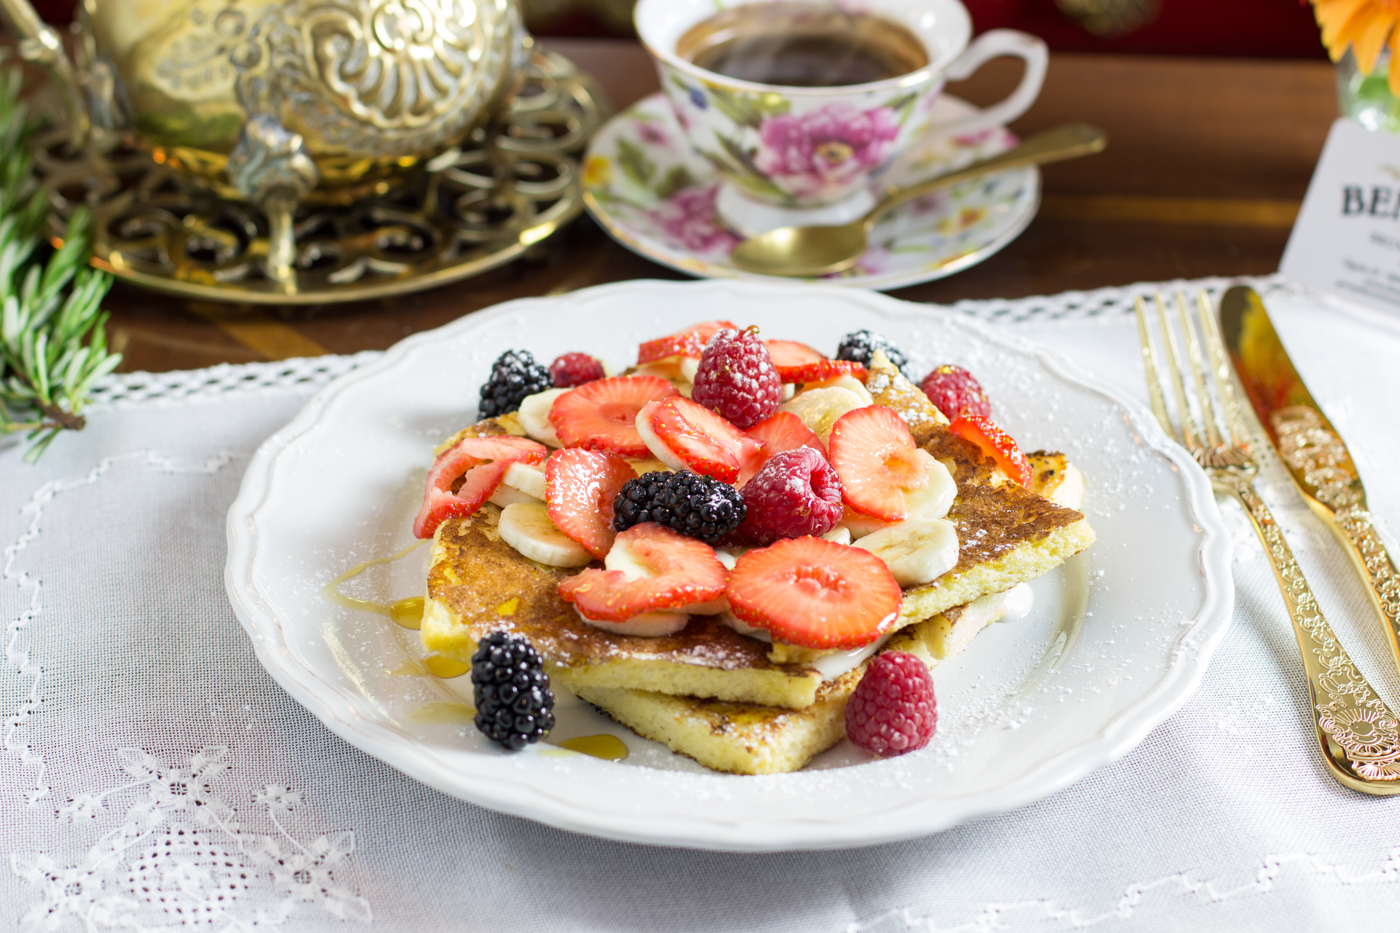 The Benedict - French toasts